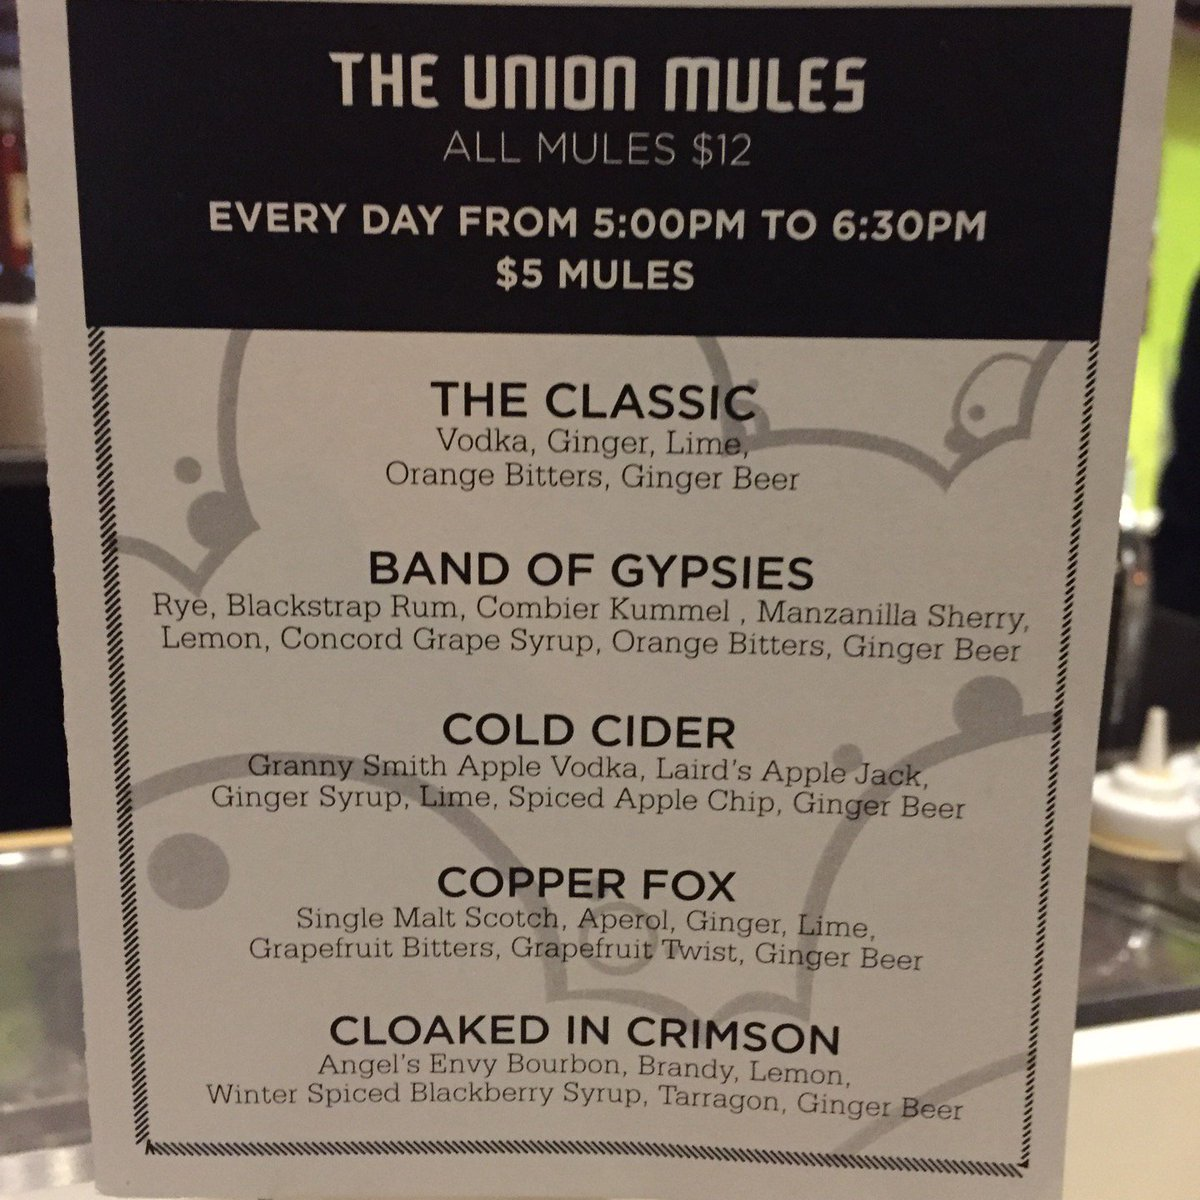 happy hour $5 mules #FTW (@ Union Sushi + Barbeque Bar - @eatatunion in Chicago, IL) https://t.co/57aUZC9Bkc https://t.co/0EJnYp6L6a